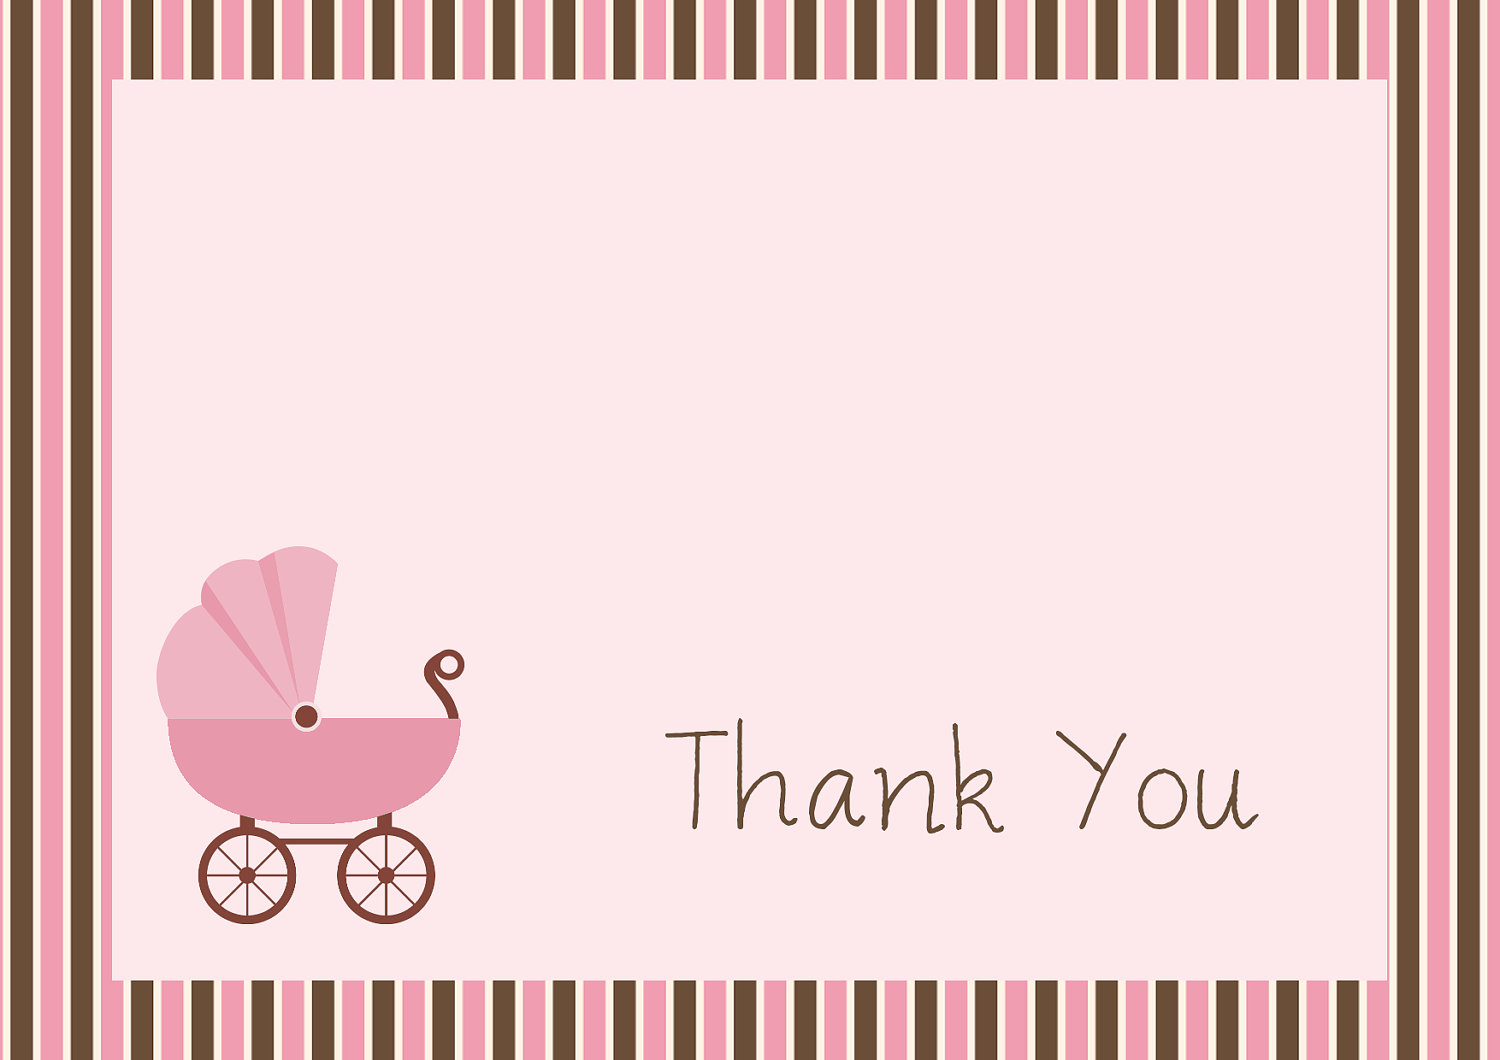 Free Printable Baby Shower Thank You Cards  Free Printable Religious Thank You Cards